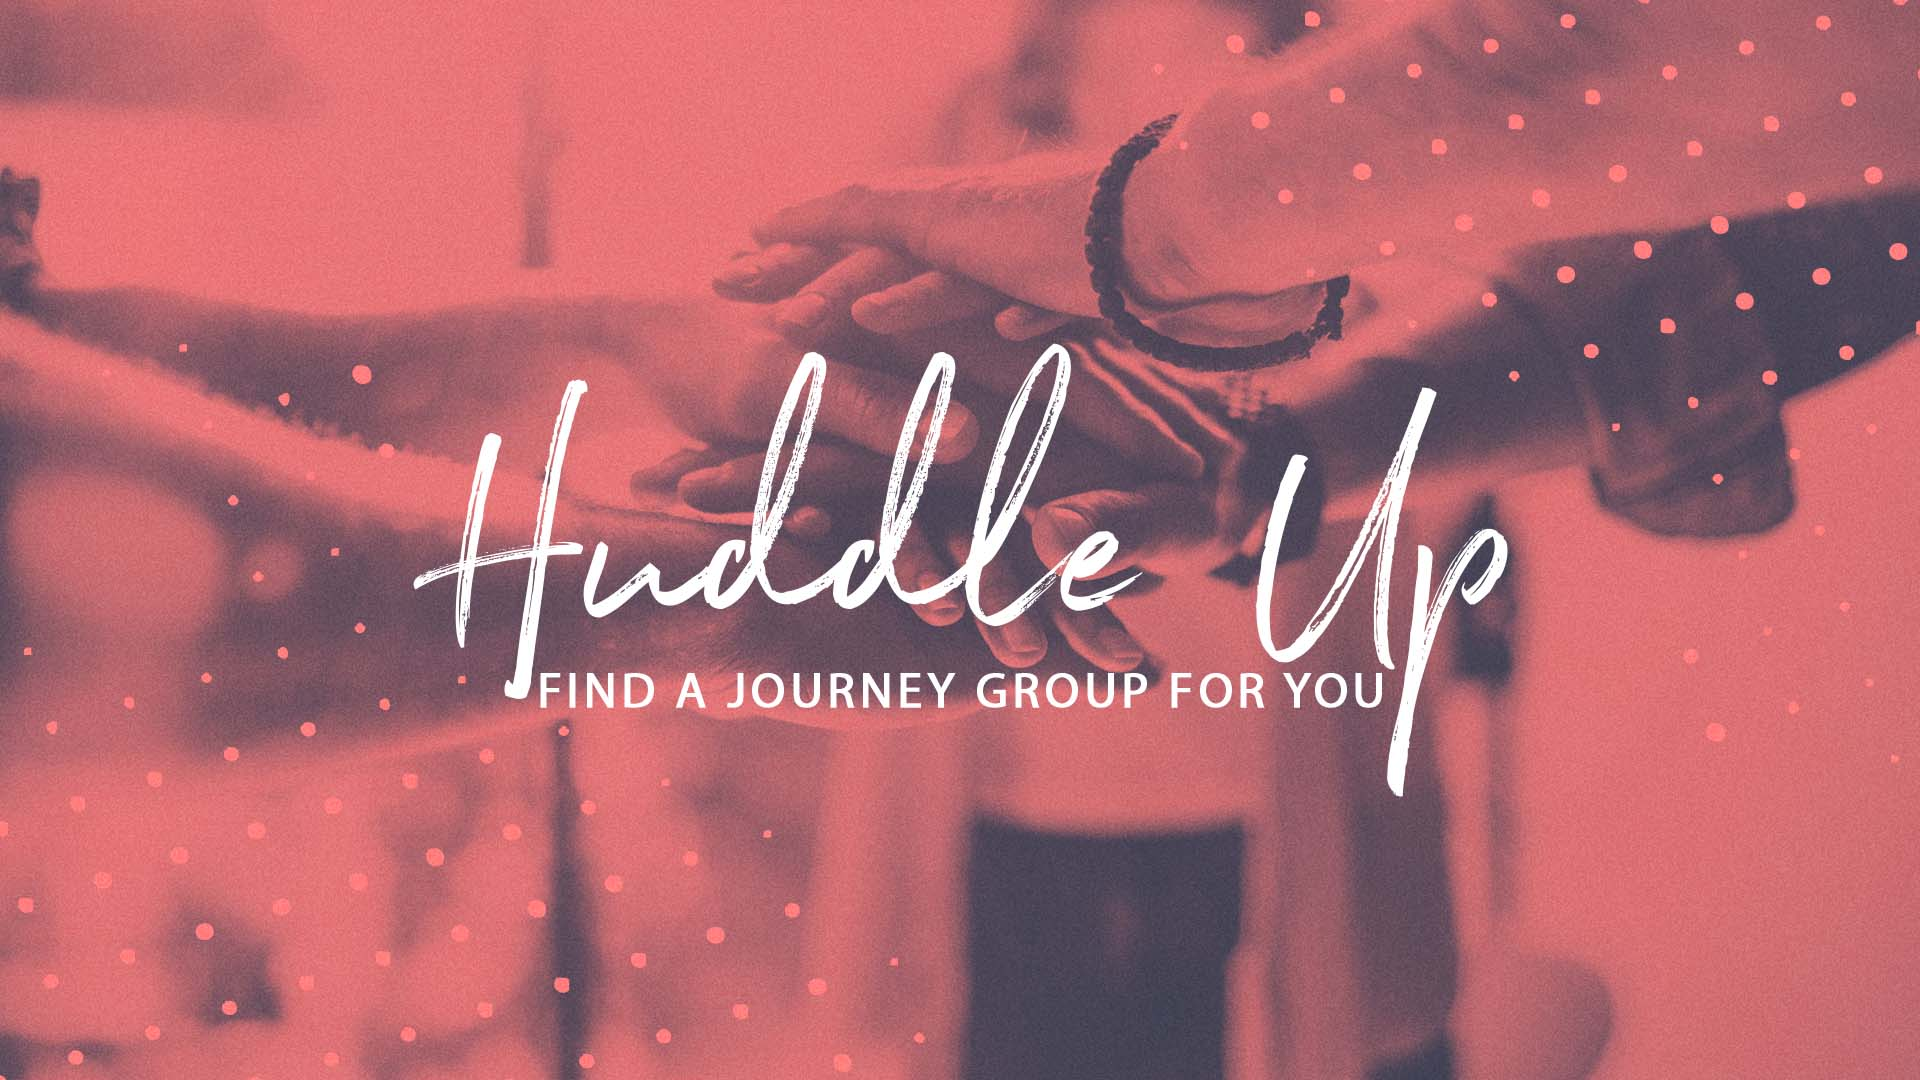 Huddle Up image